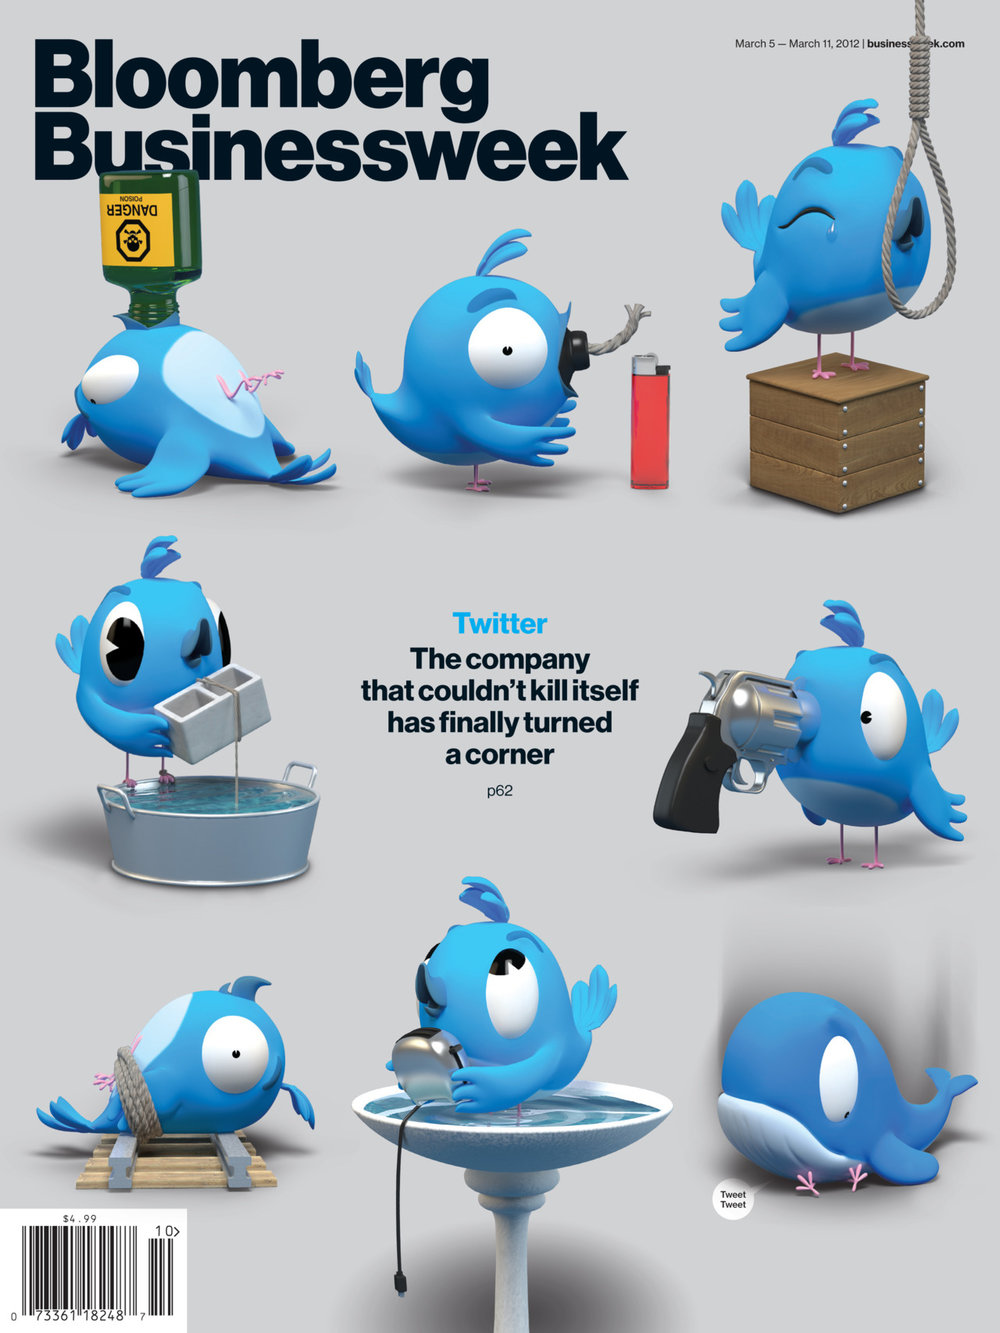 Twitter-Bird-Bloomberg-Businessweek-tumblr.jpg